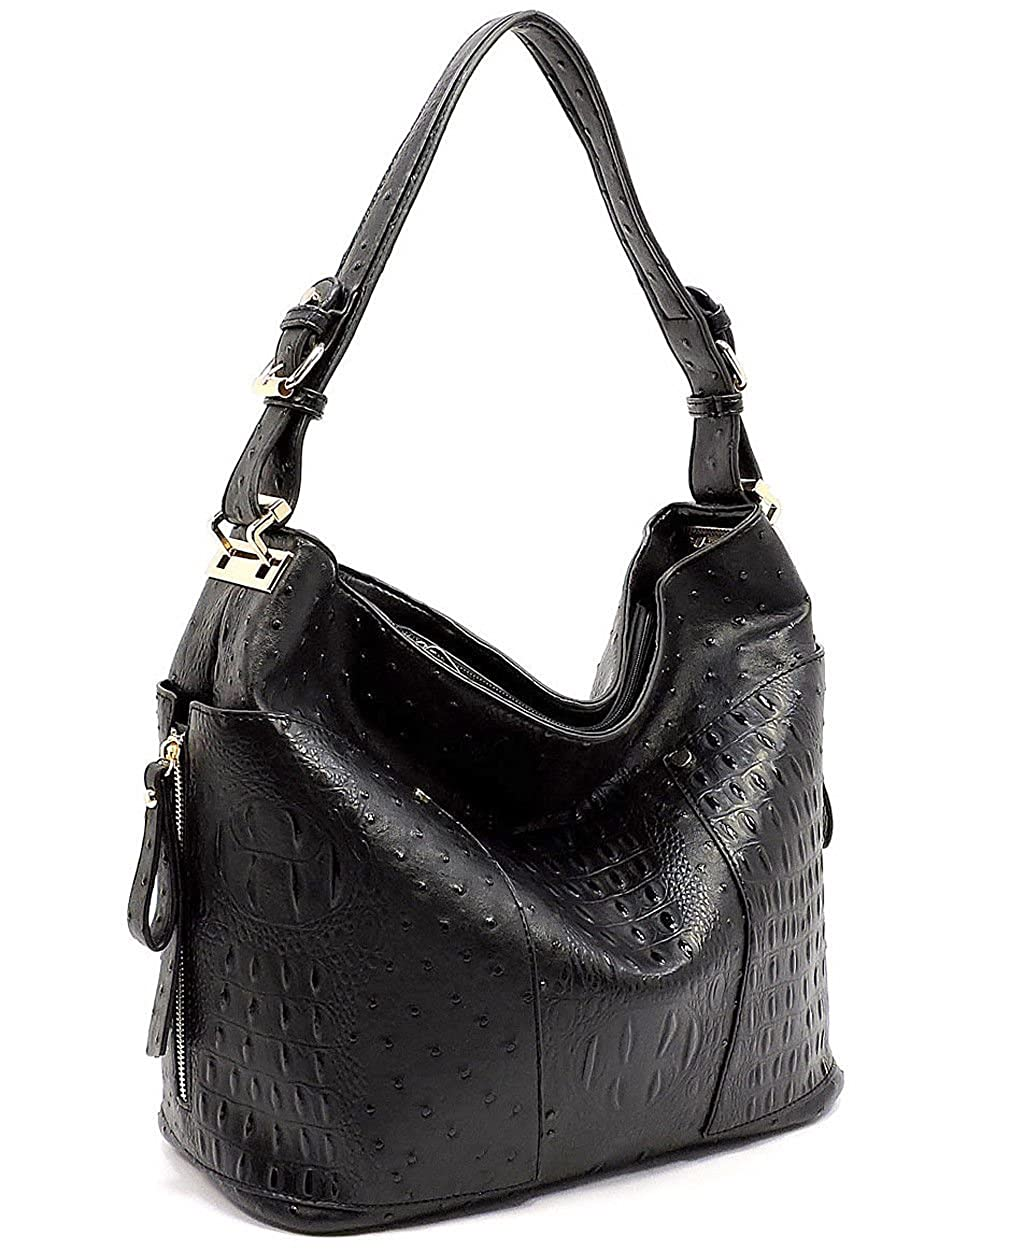 2 Compartment Zip-top LG Hobo w//Side Pockets Le Miel Ostrich Embossed Black